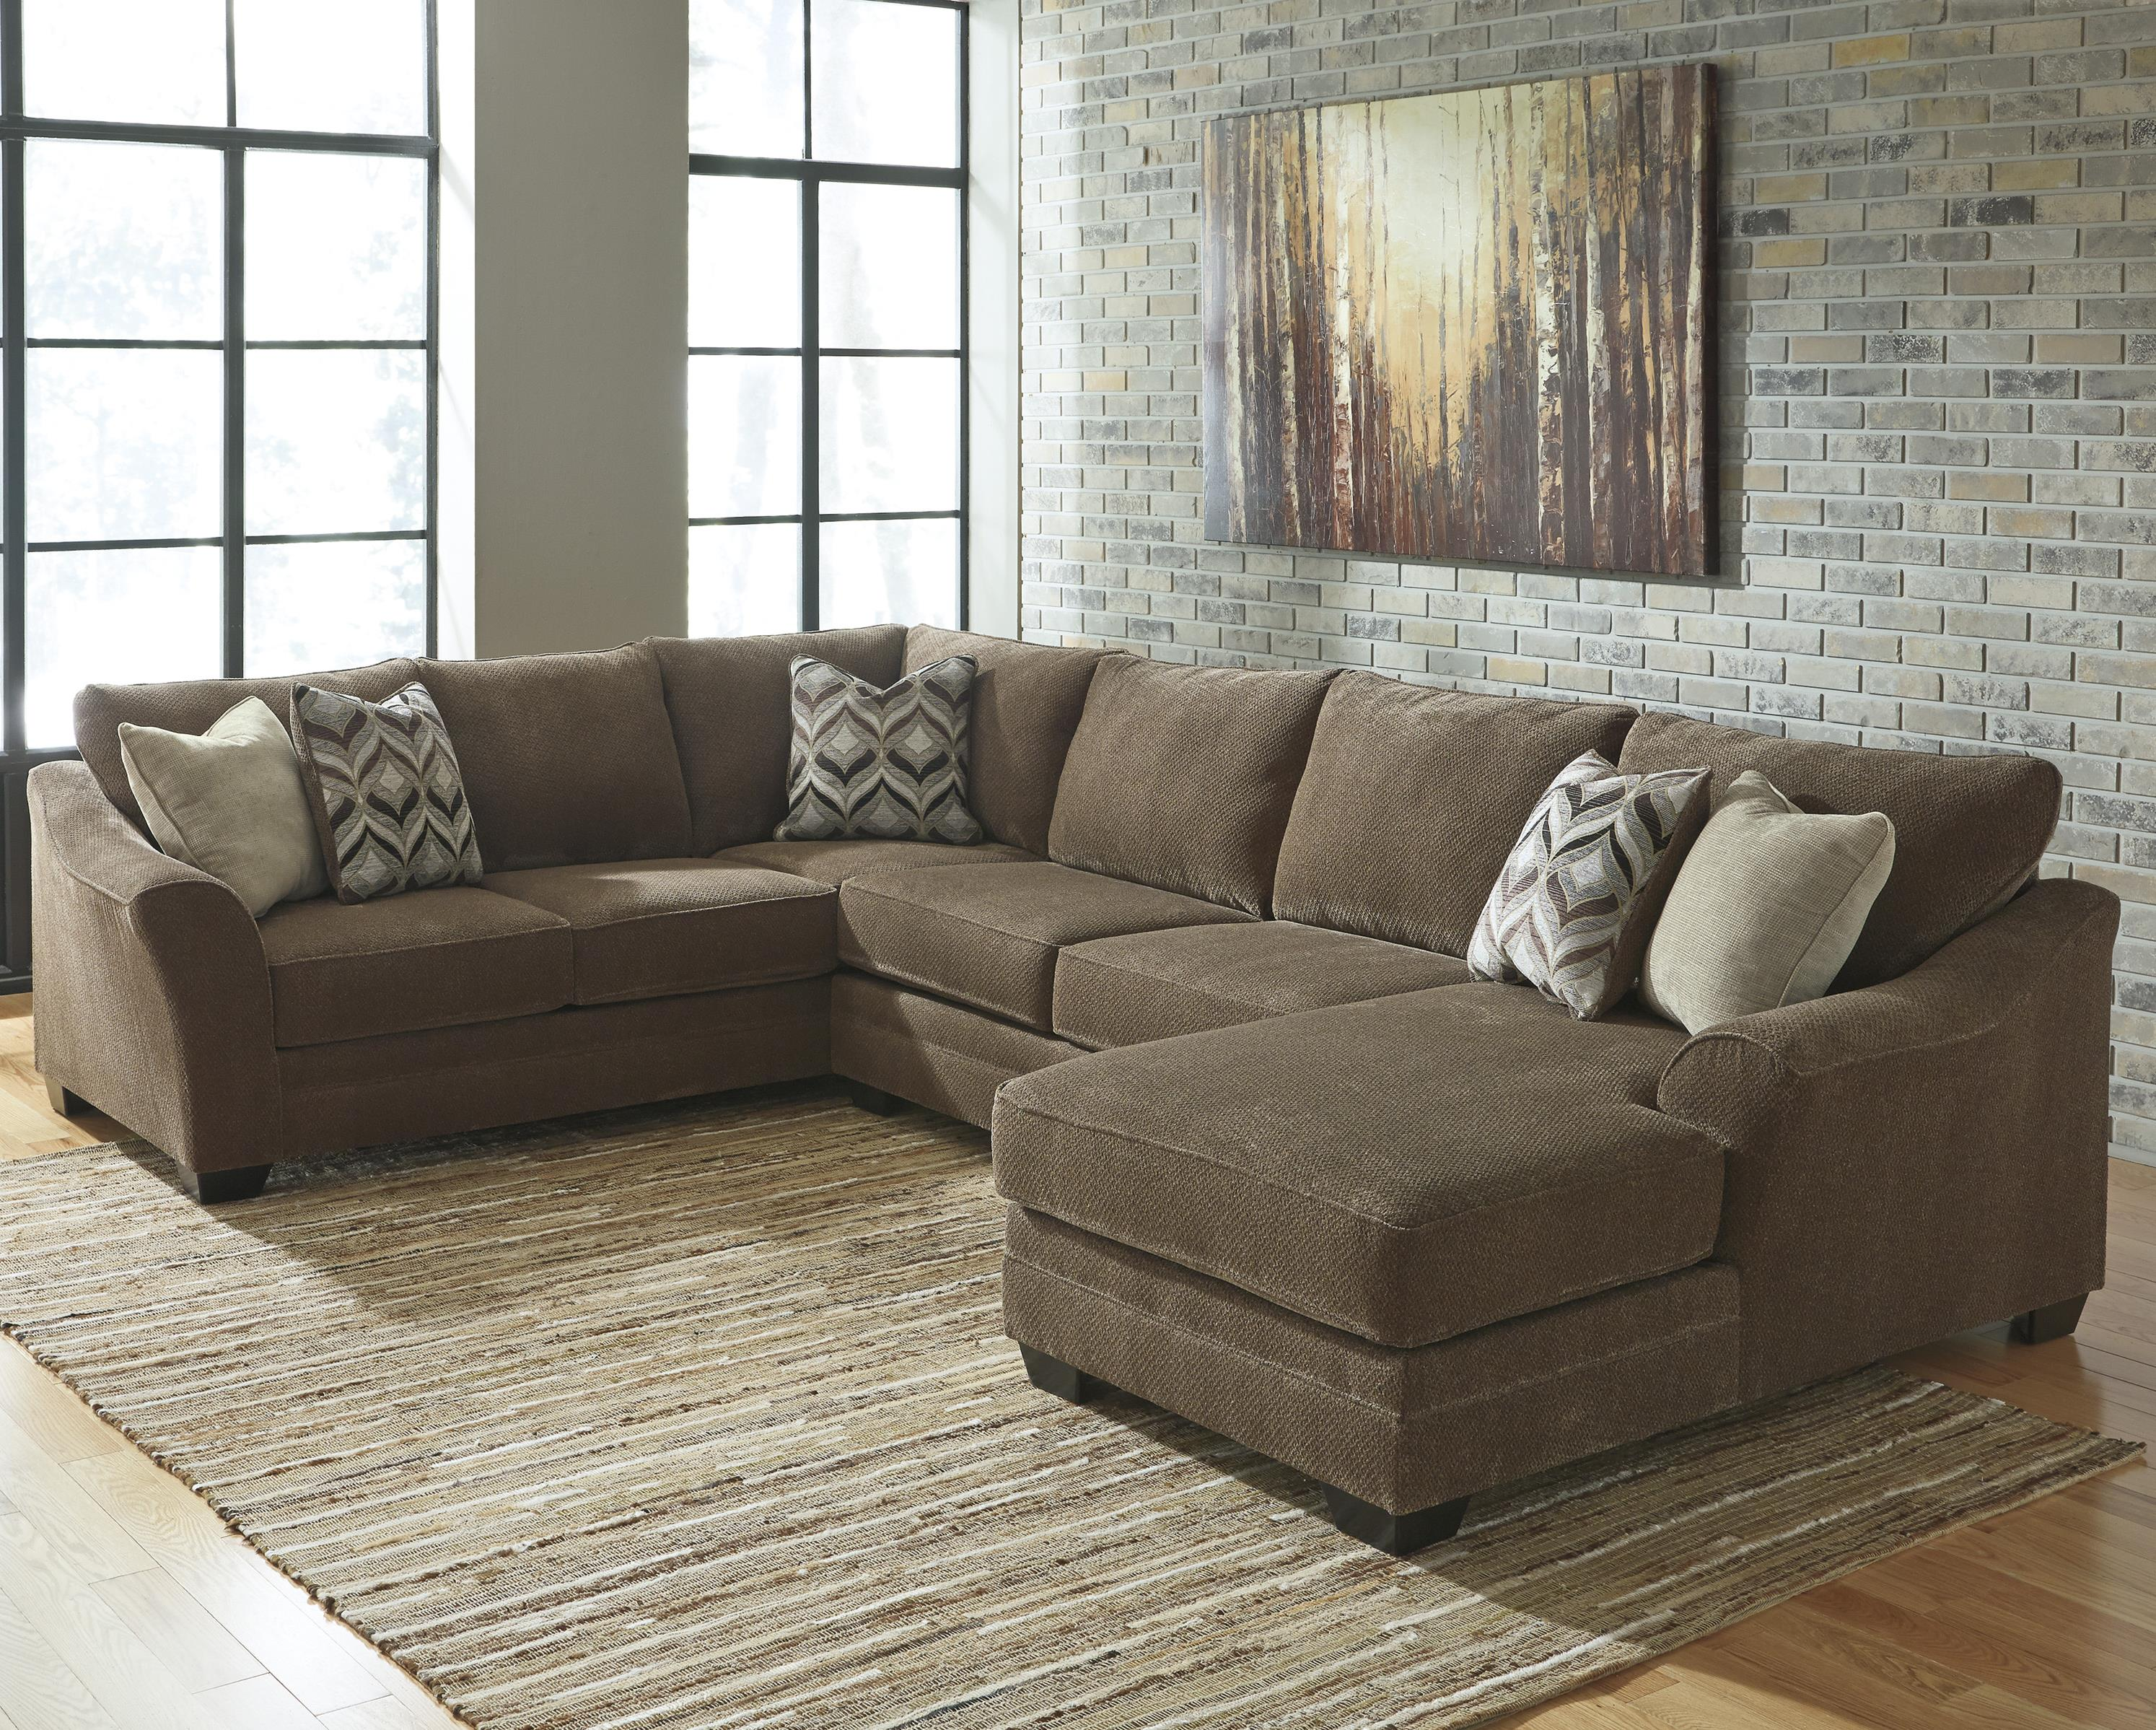 Benchcraft Justyna Contemporary 3-Piece Sectional with Right Chaise ...